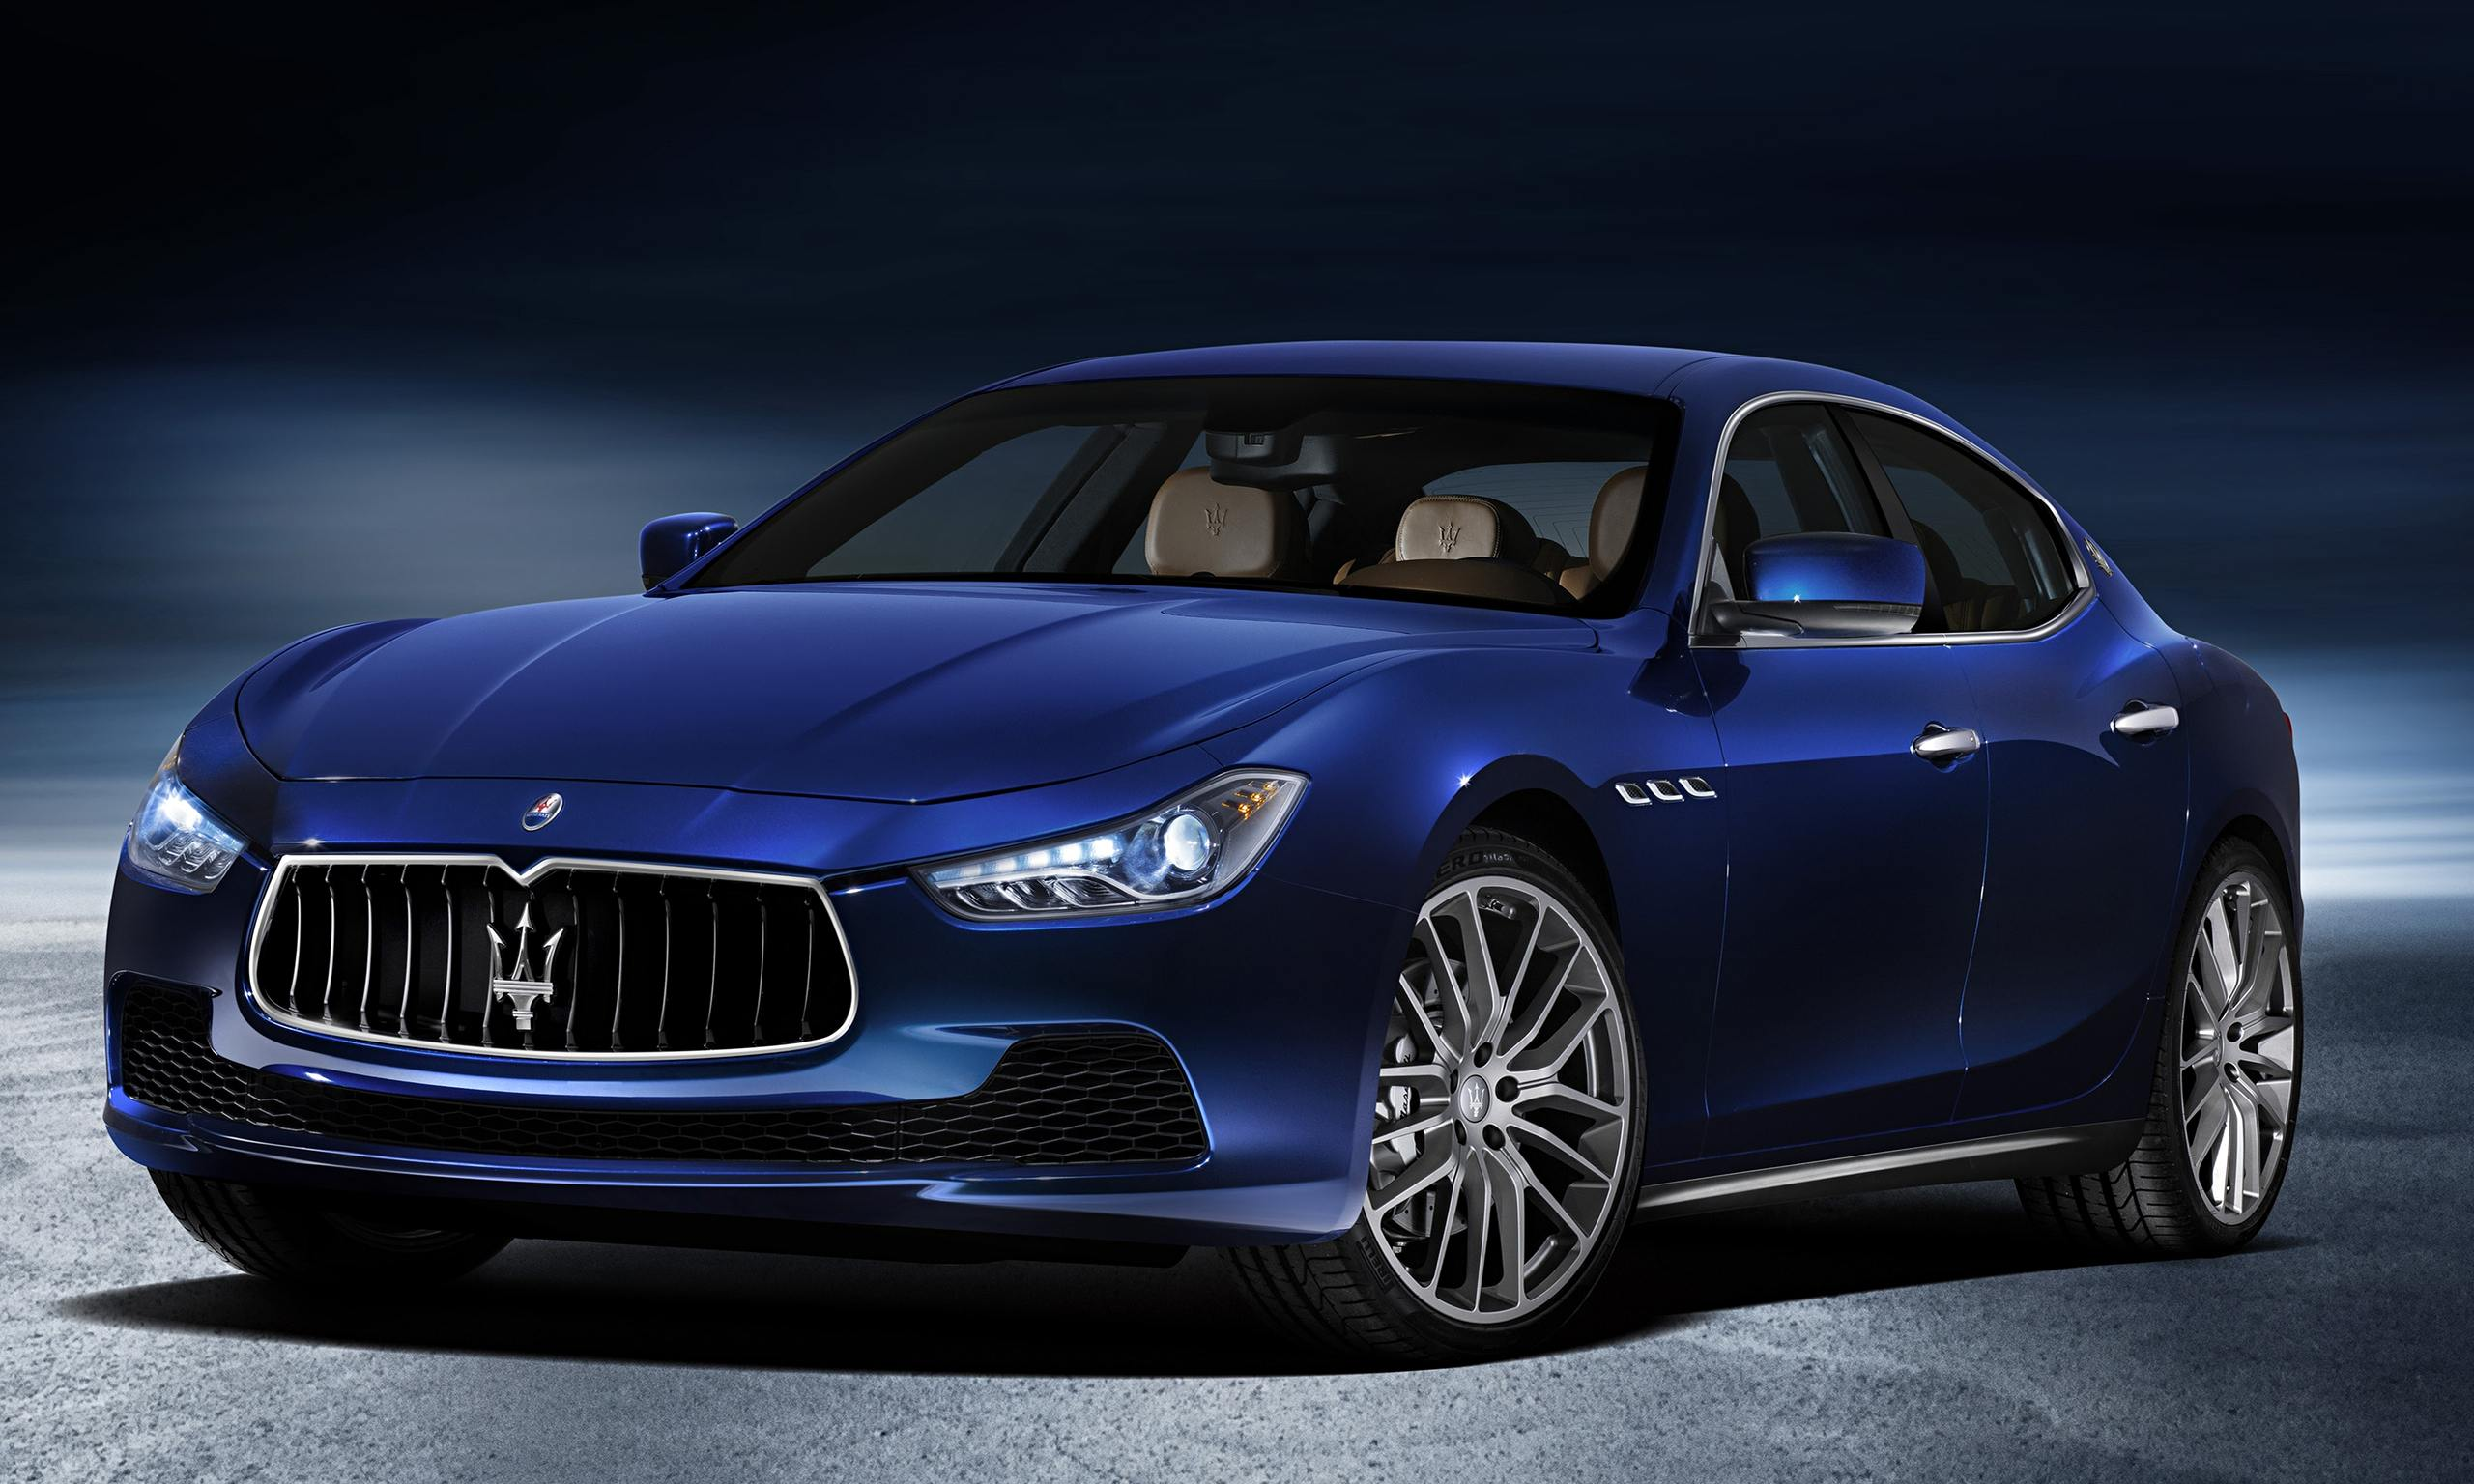 Maserati Ghibli Maserati Ghibli Car Review Martin Love Technology